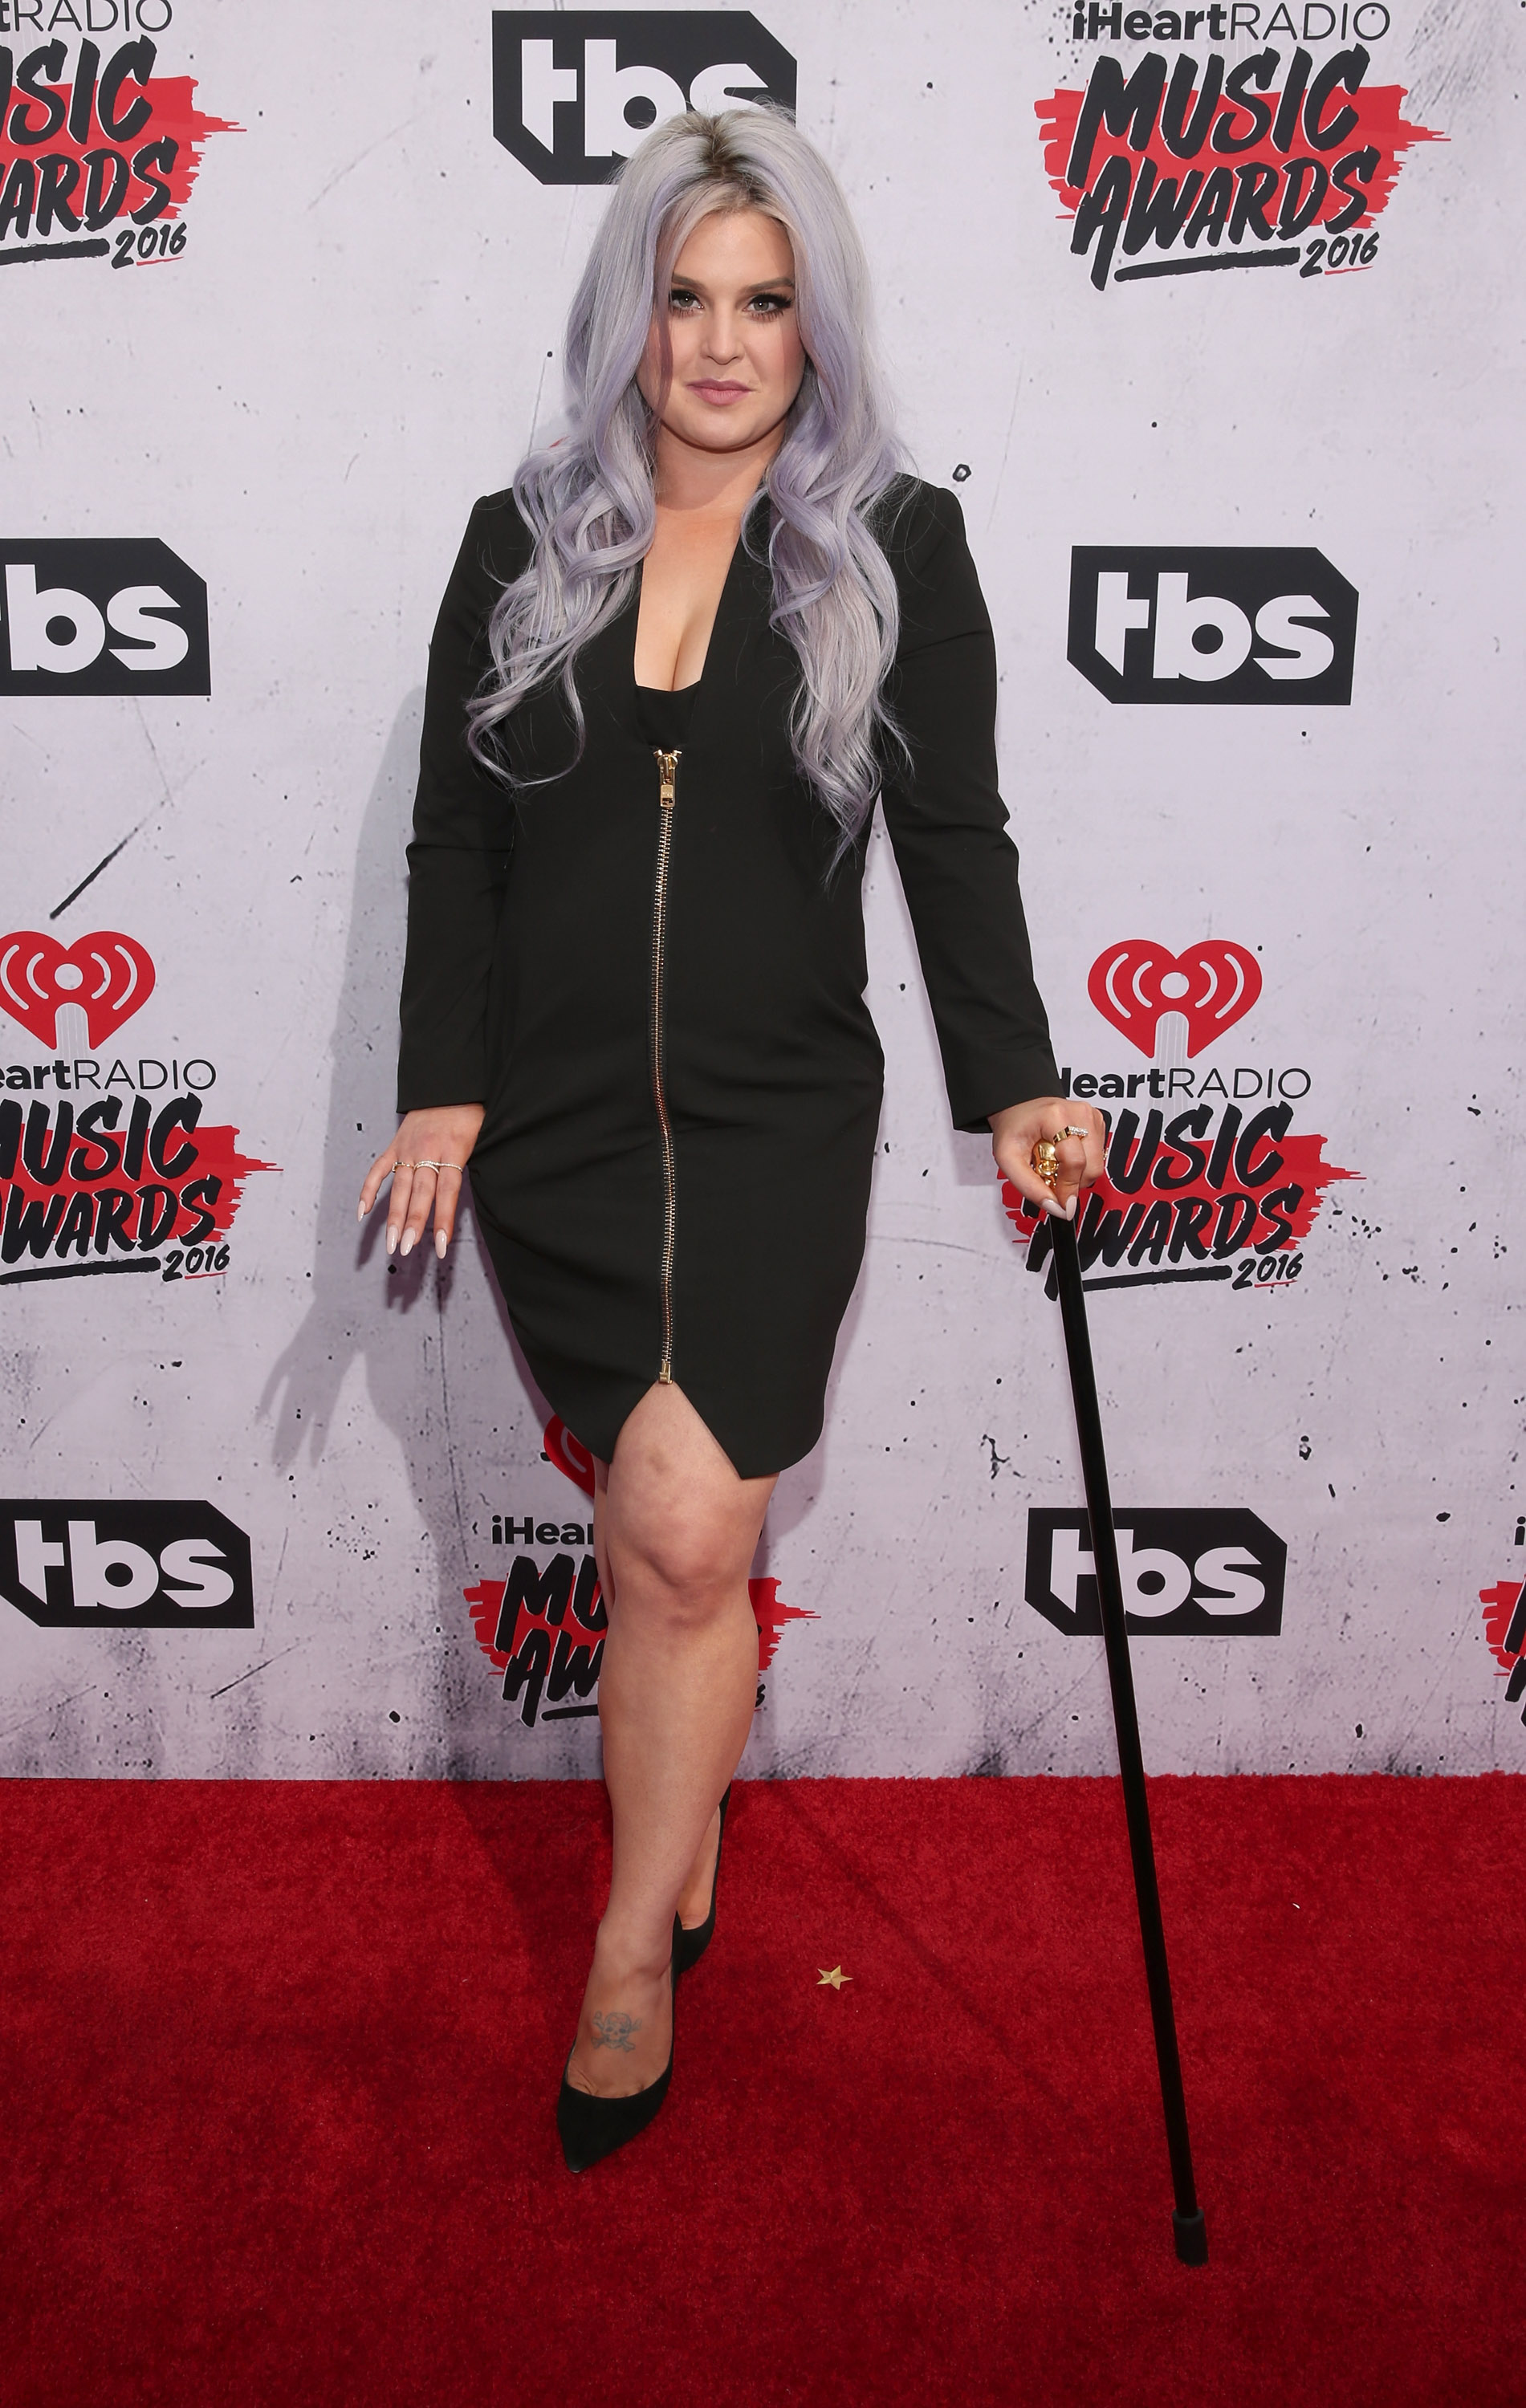 INGLEWOOD, CALIFORNIA - APRIL 03: Kelly Osbourne attends the iHeartRadio Music Awards at the Forum on April 3, 2016 in Inglewood, California. (Photo by Todd Williamson/Getty Images)